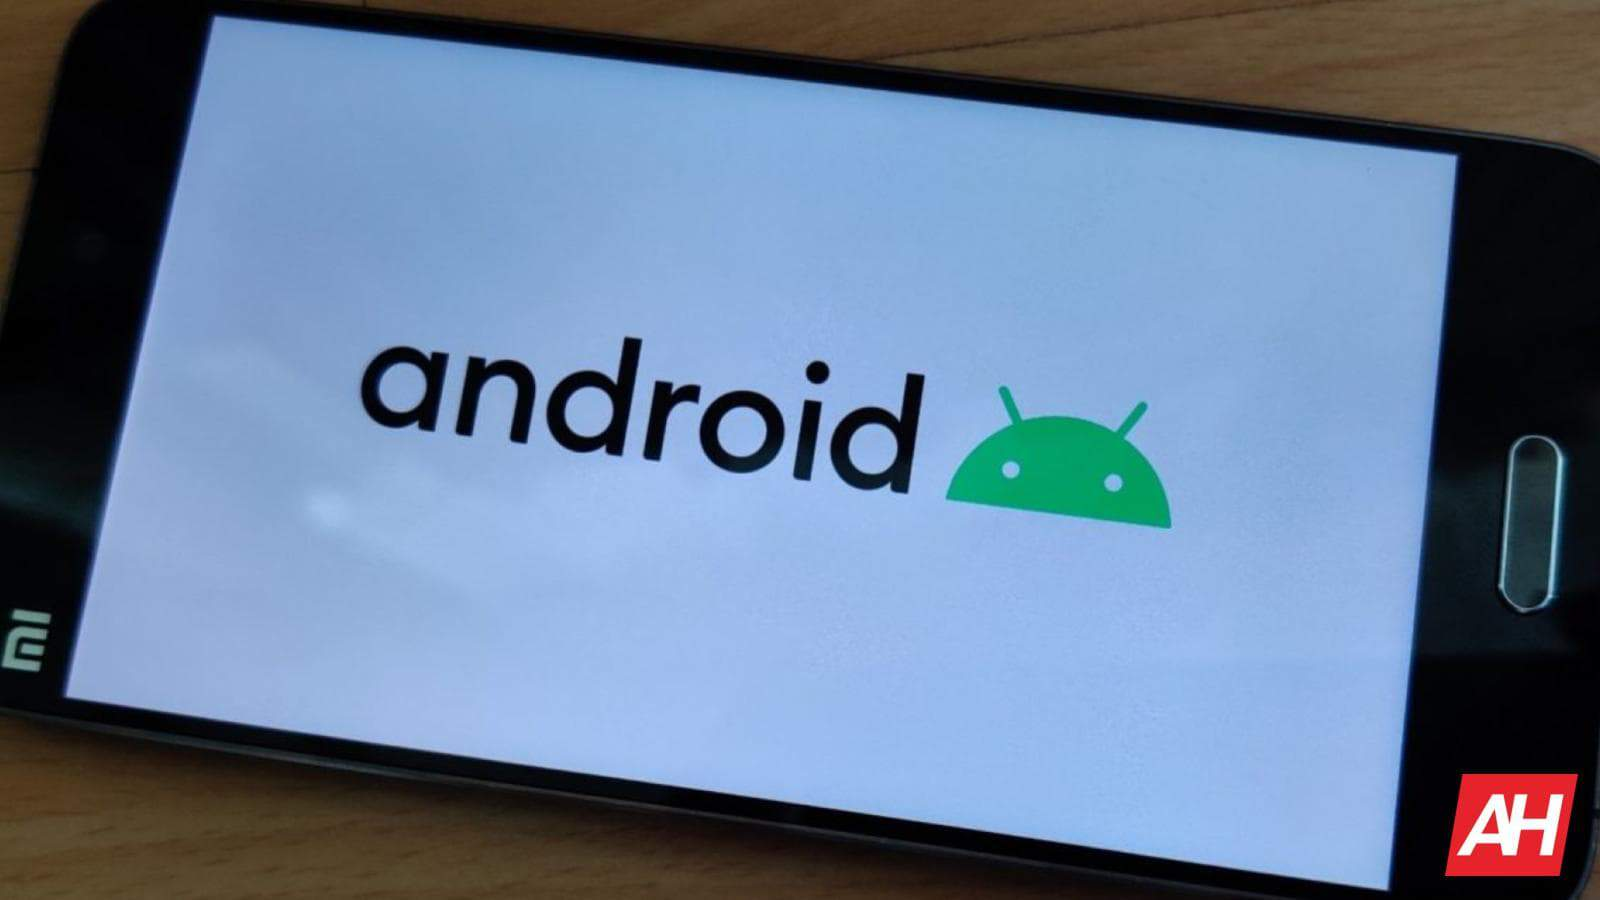 android new logo 2019